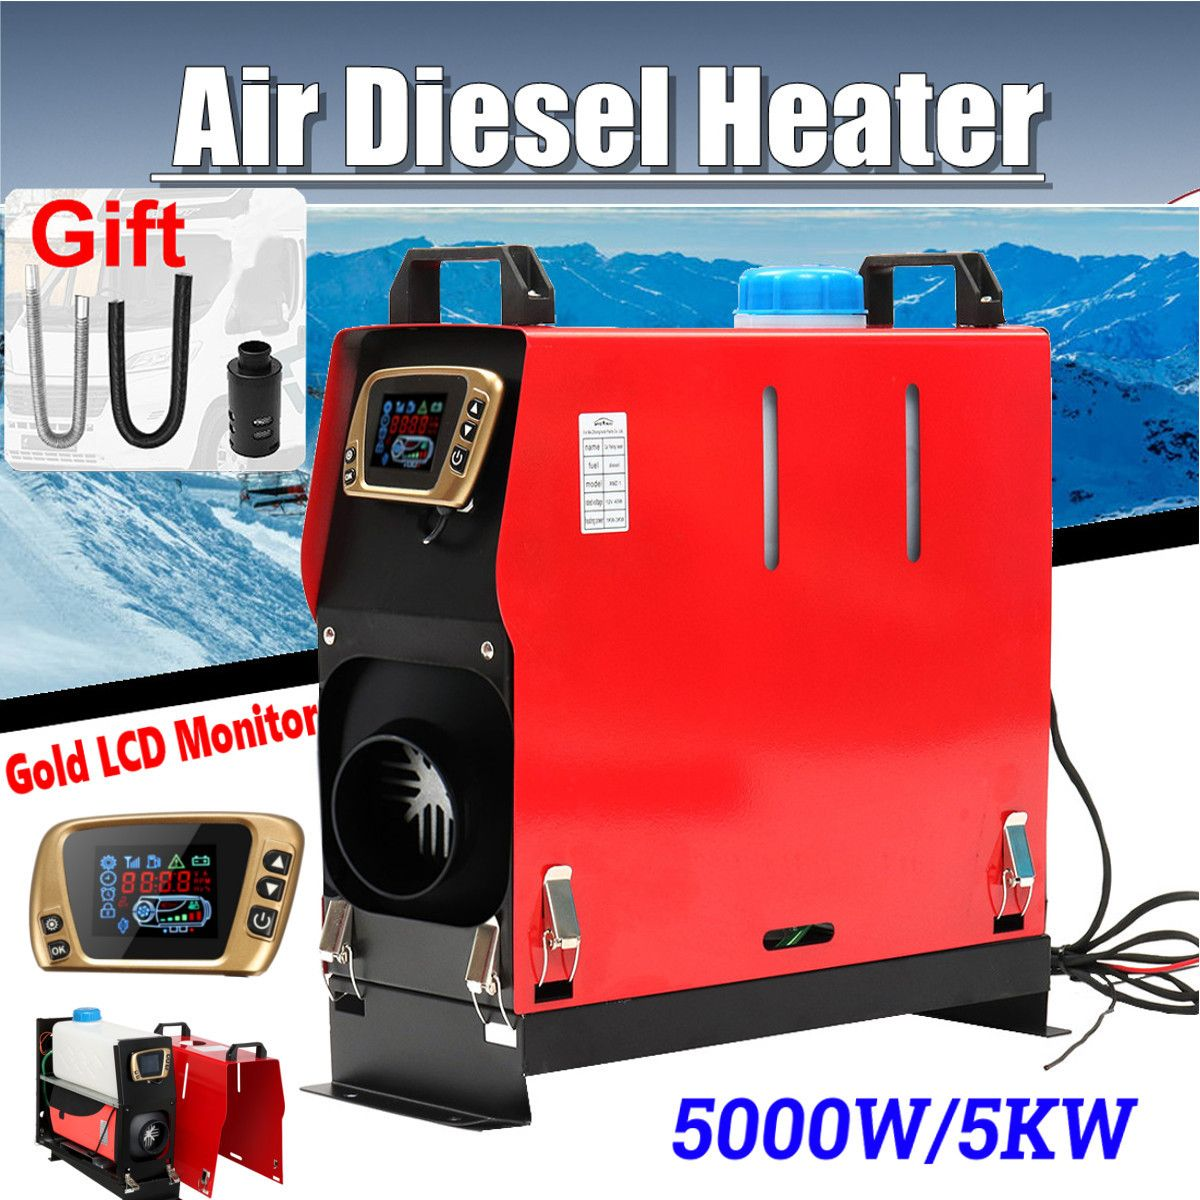 All In One 5000W Air diesels Heater 5KW 12V One Hole Car Heater For Trucks Motor-Homes Boats Bus +LCD key Switch +Remote control